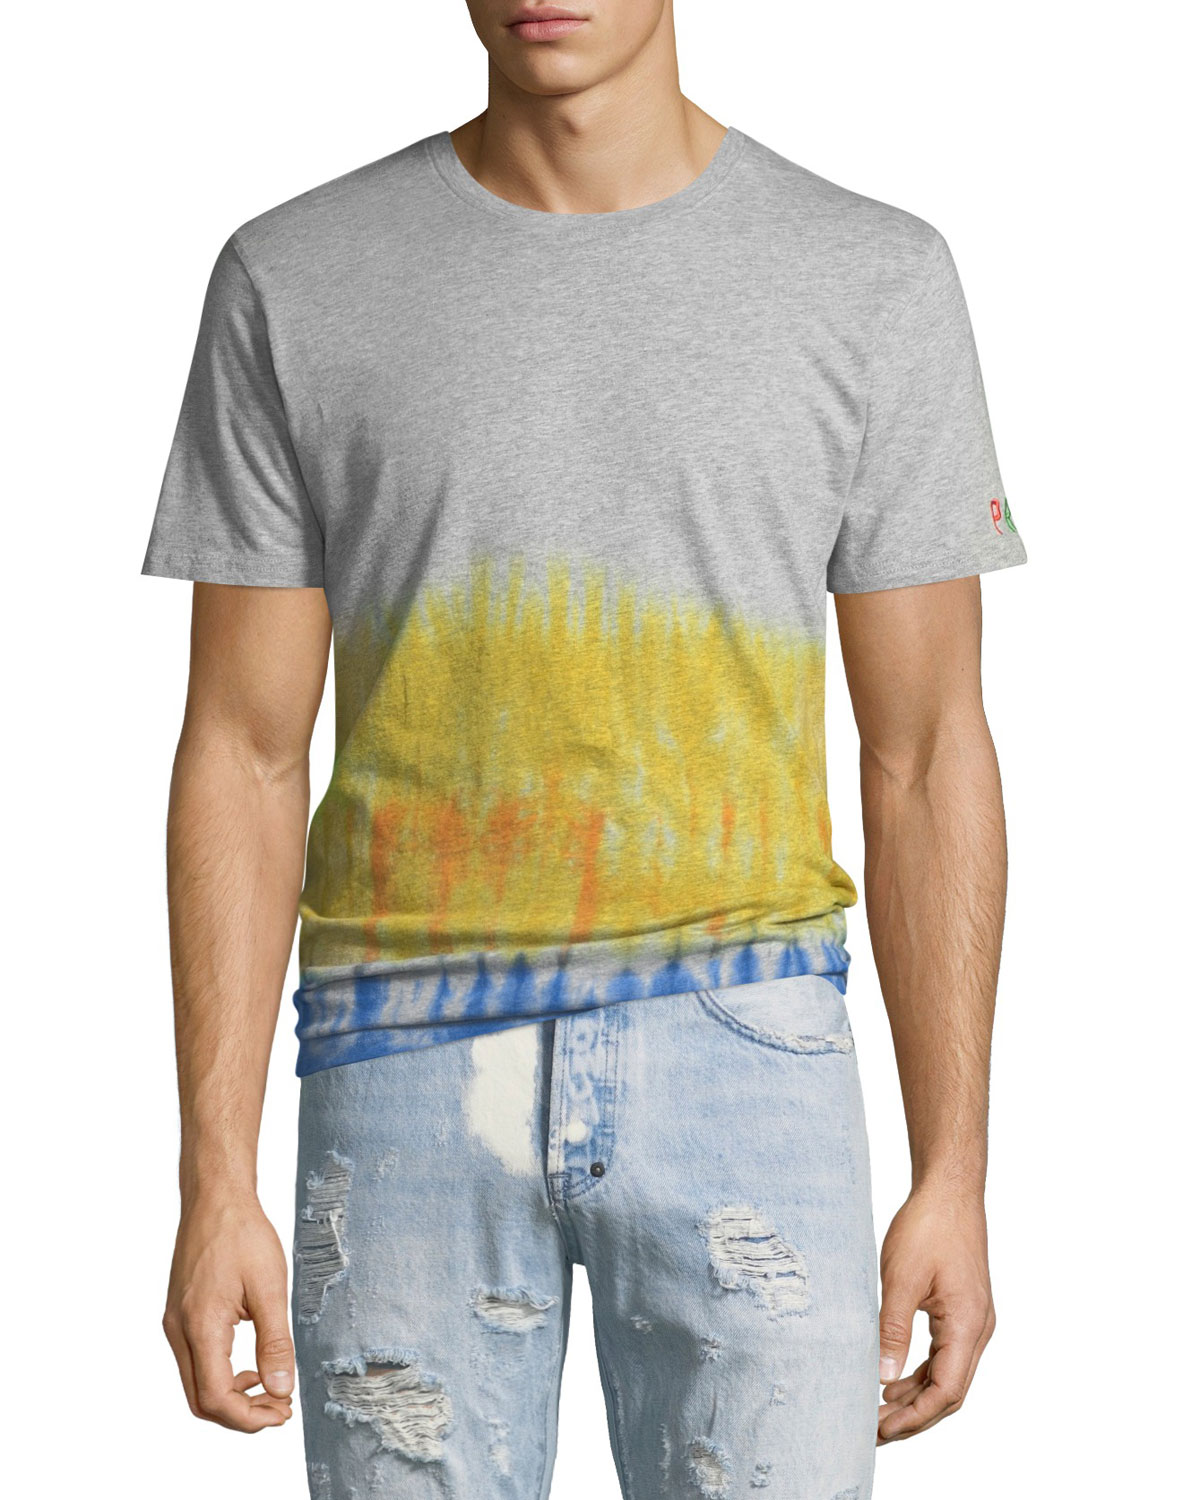 Men's Short Sleeve T With Tie-Dye Waist